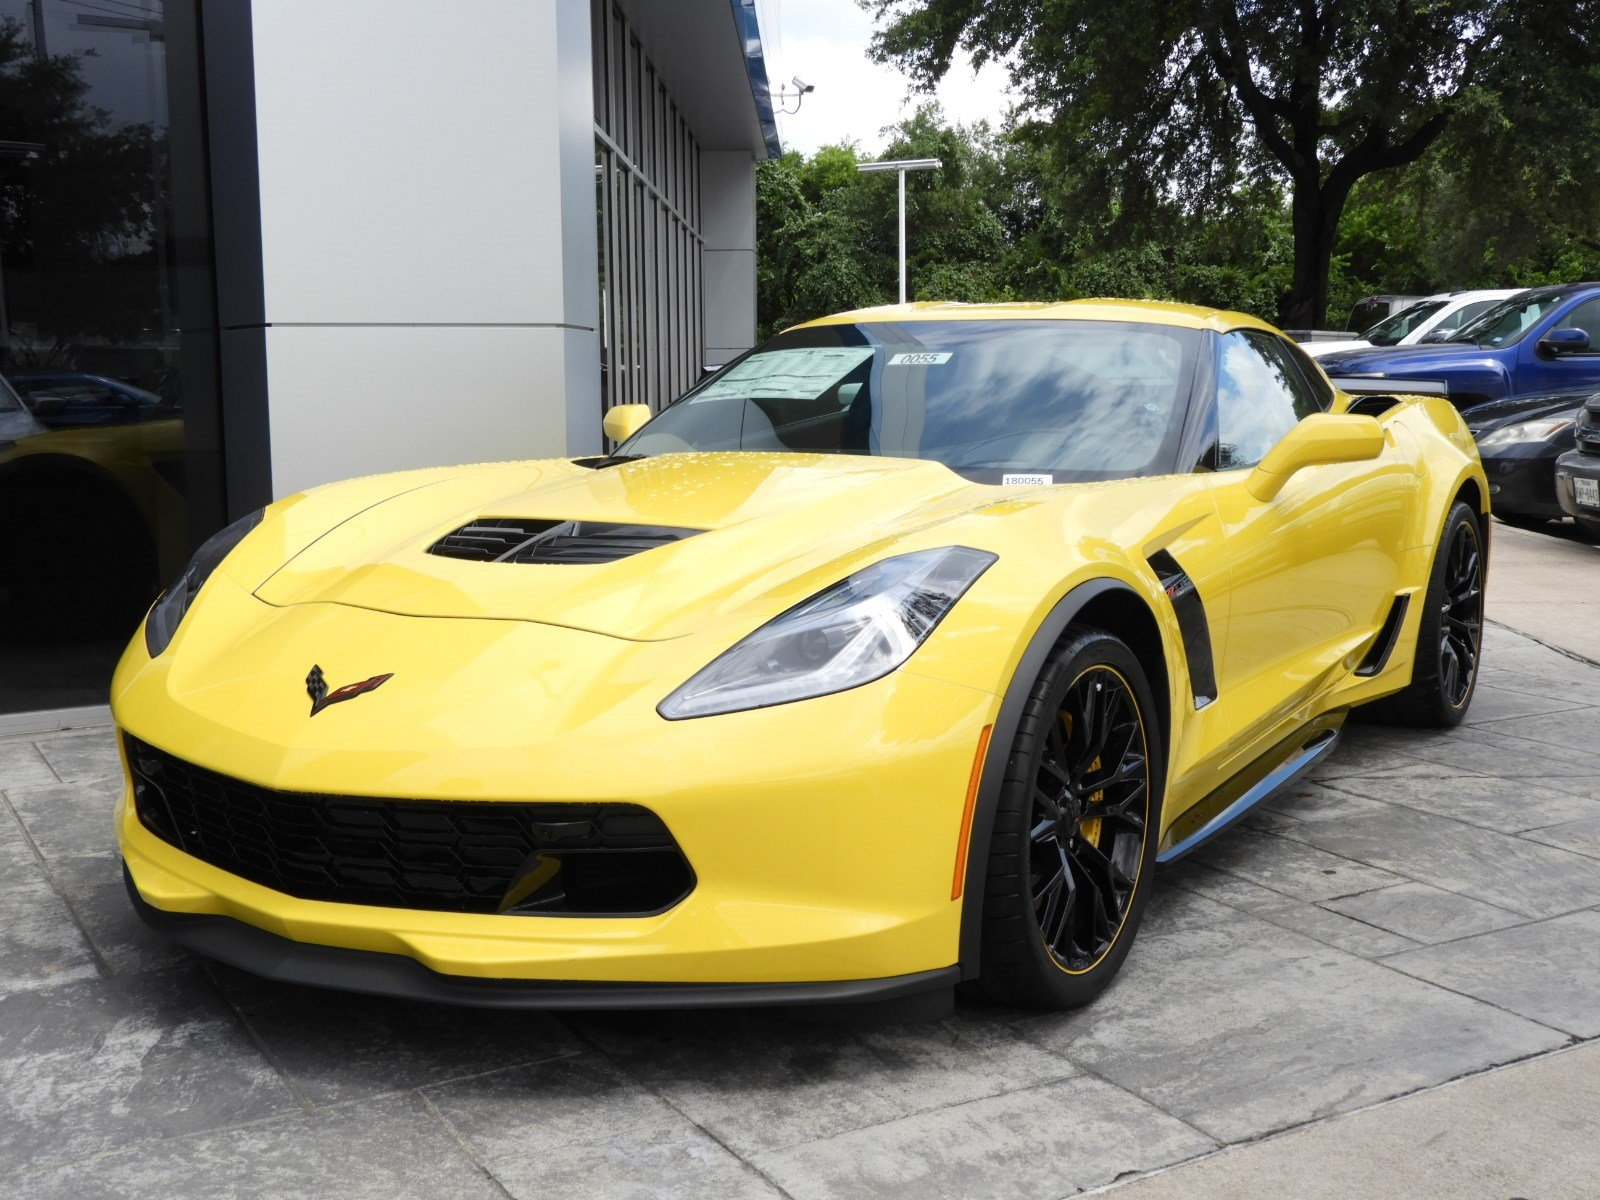 2018 chevrolet corvette z06. wonderful z06 new 2018 chevrolet corvette z06 2lz on chevrolet corvette z06